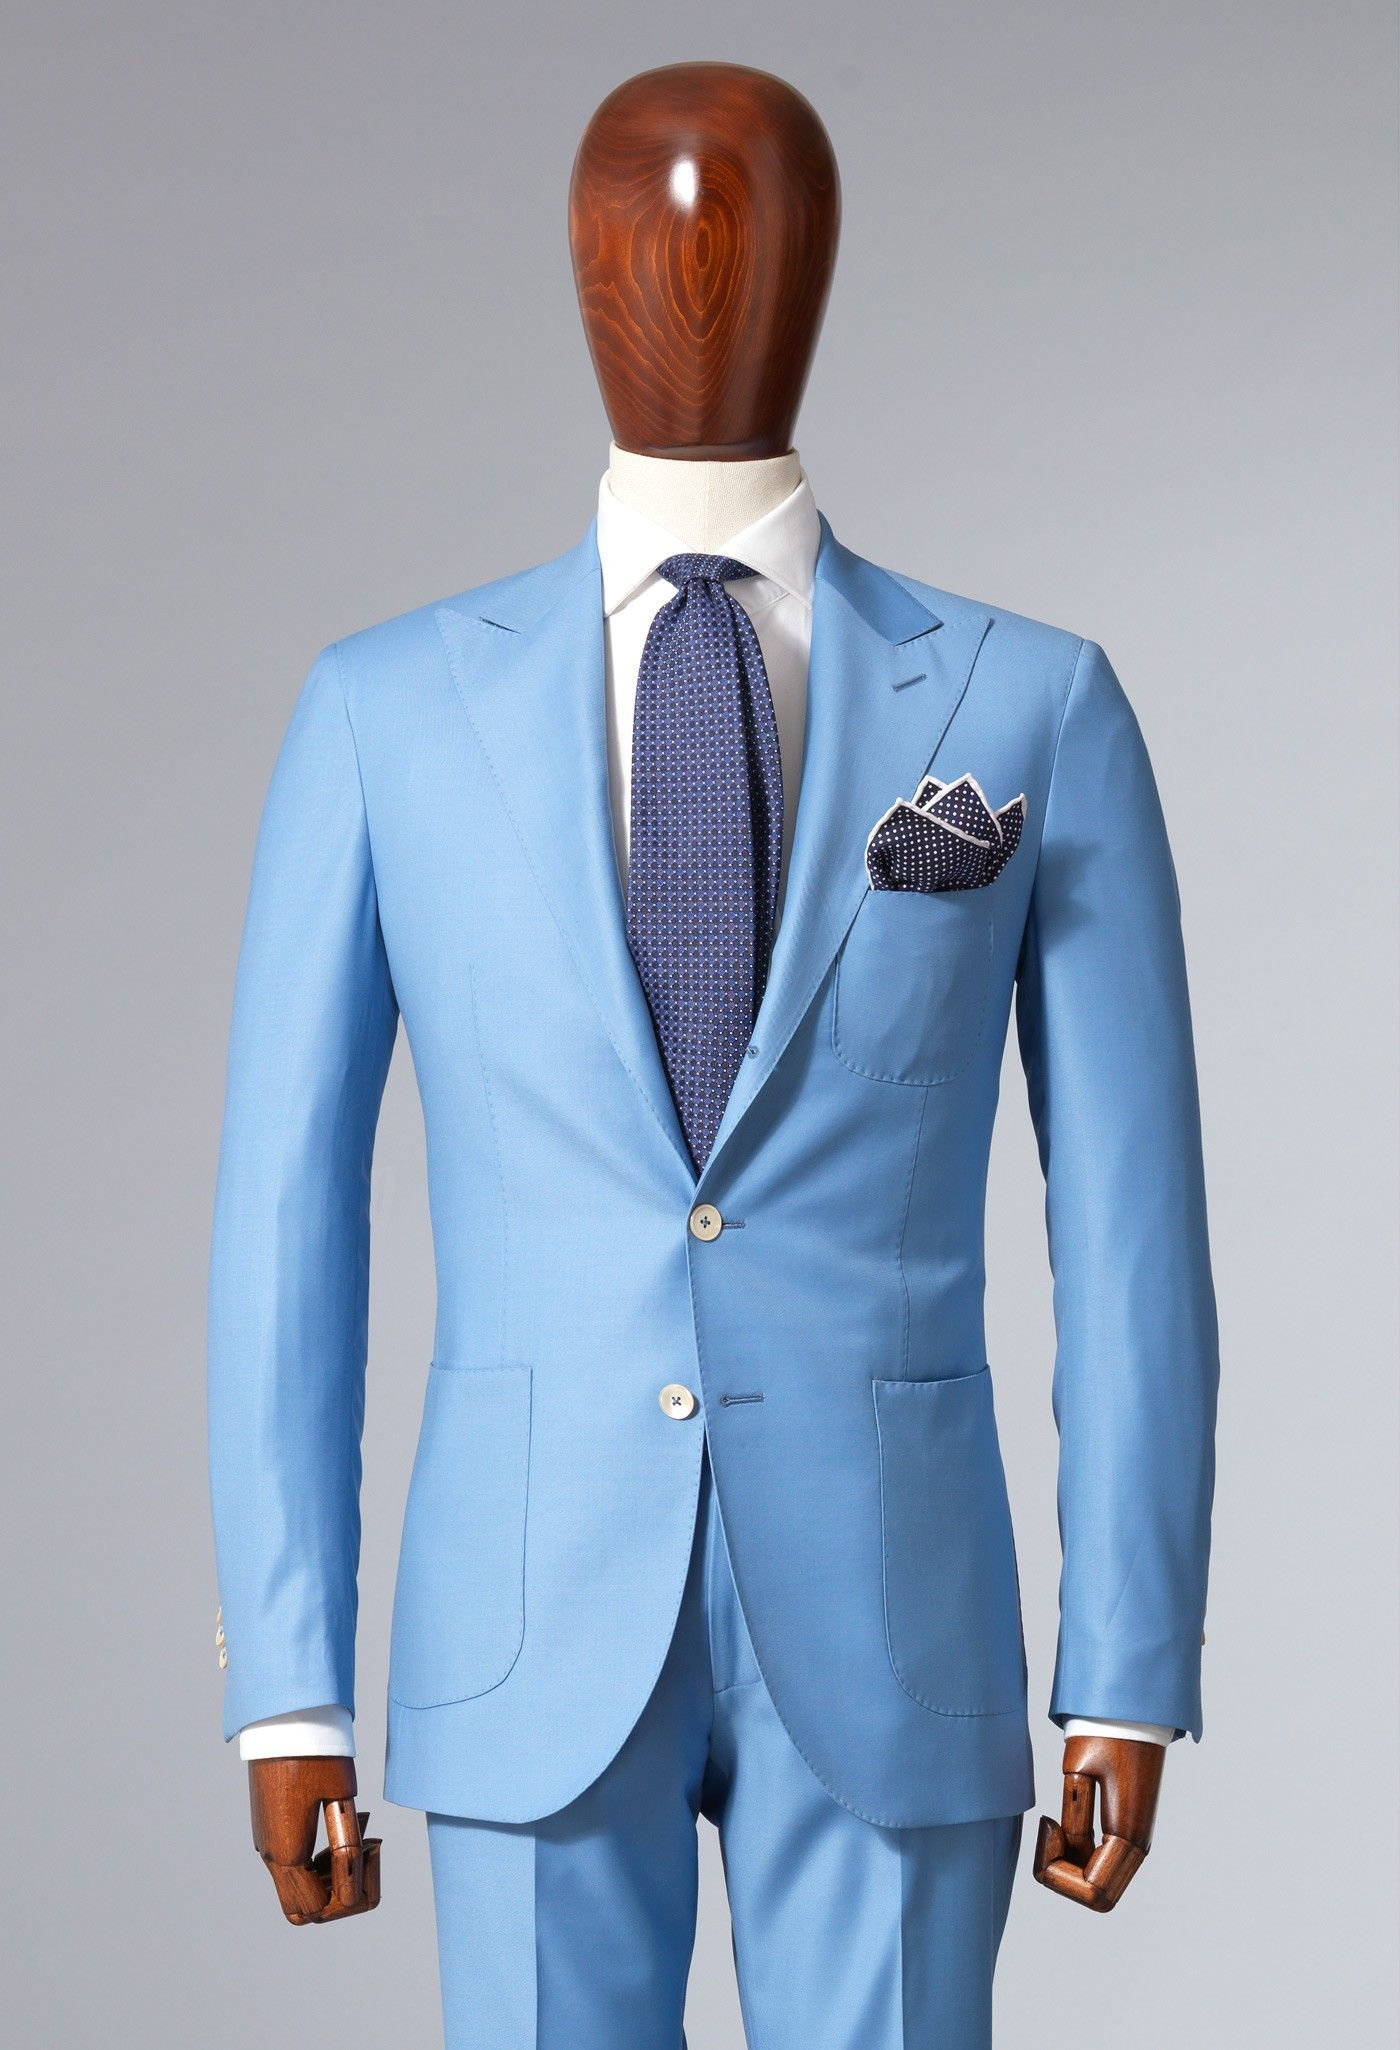 Light Blue Suit | Men\'s Suit and formal Dresses | Men Wedding Suit ...